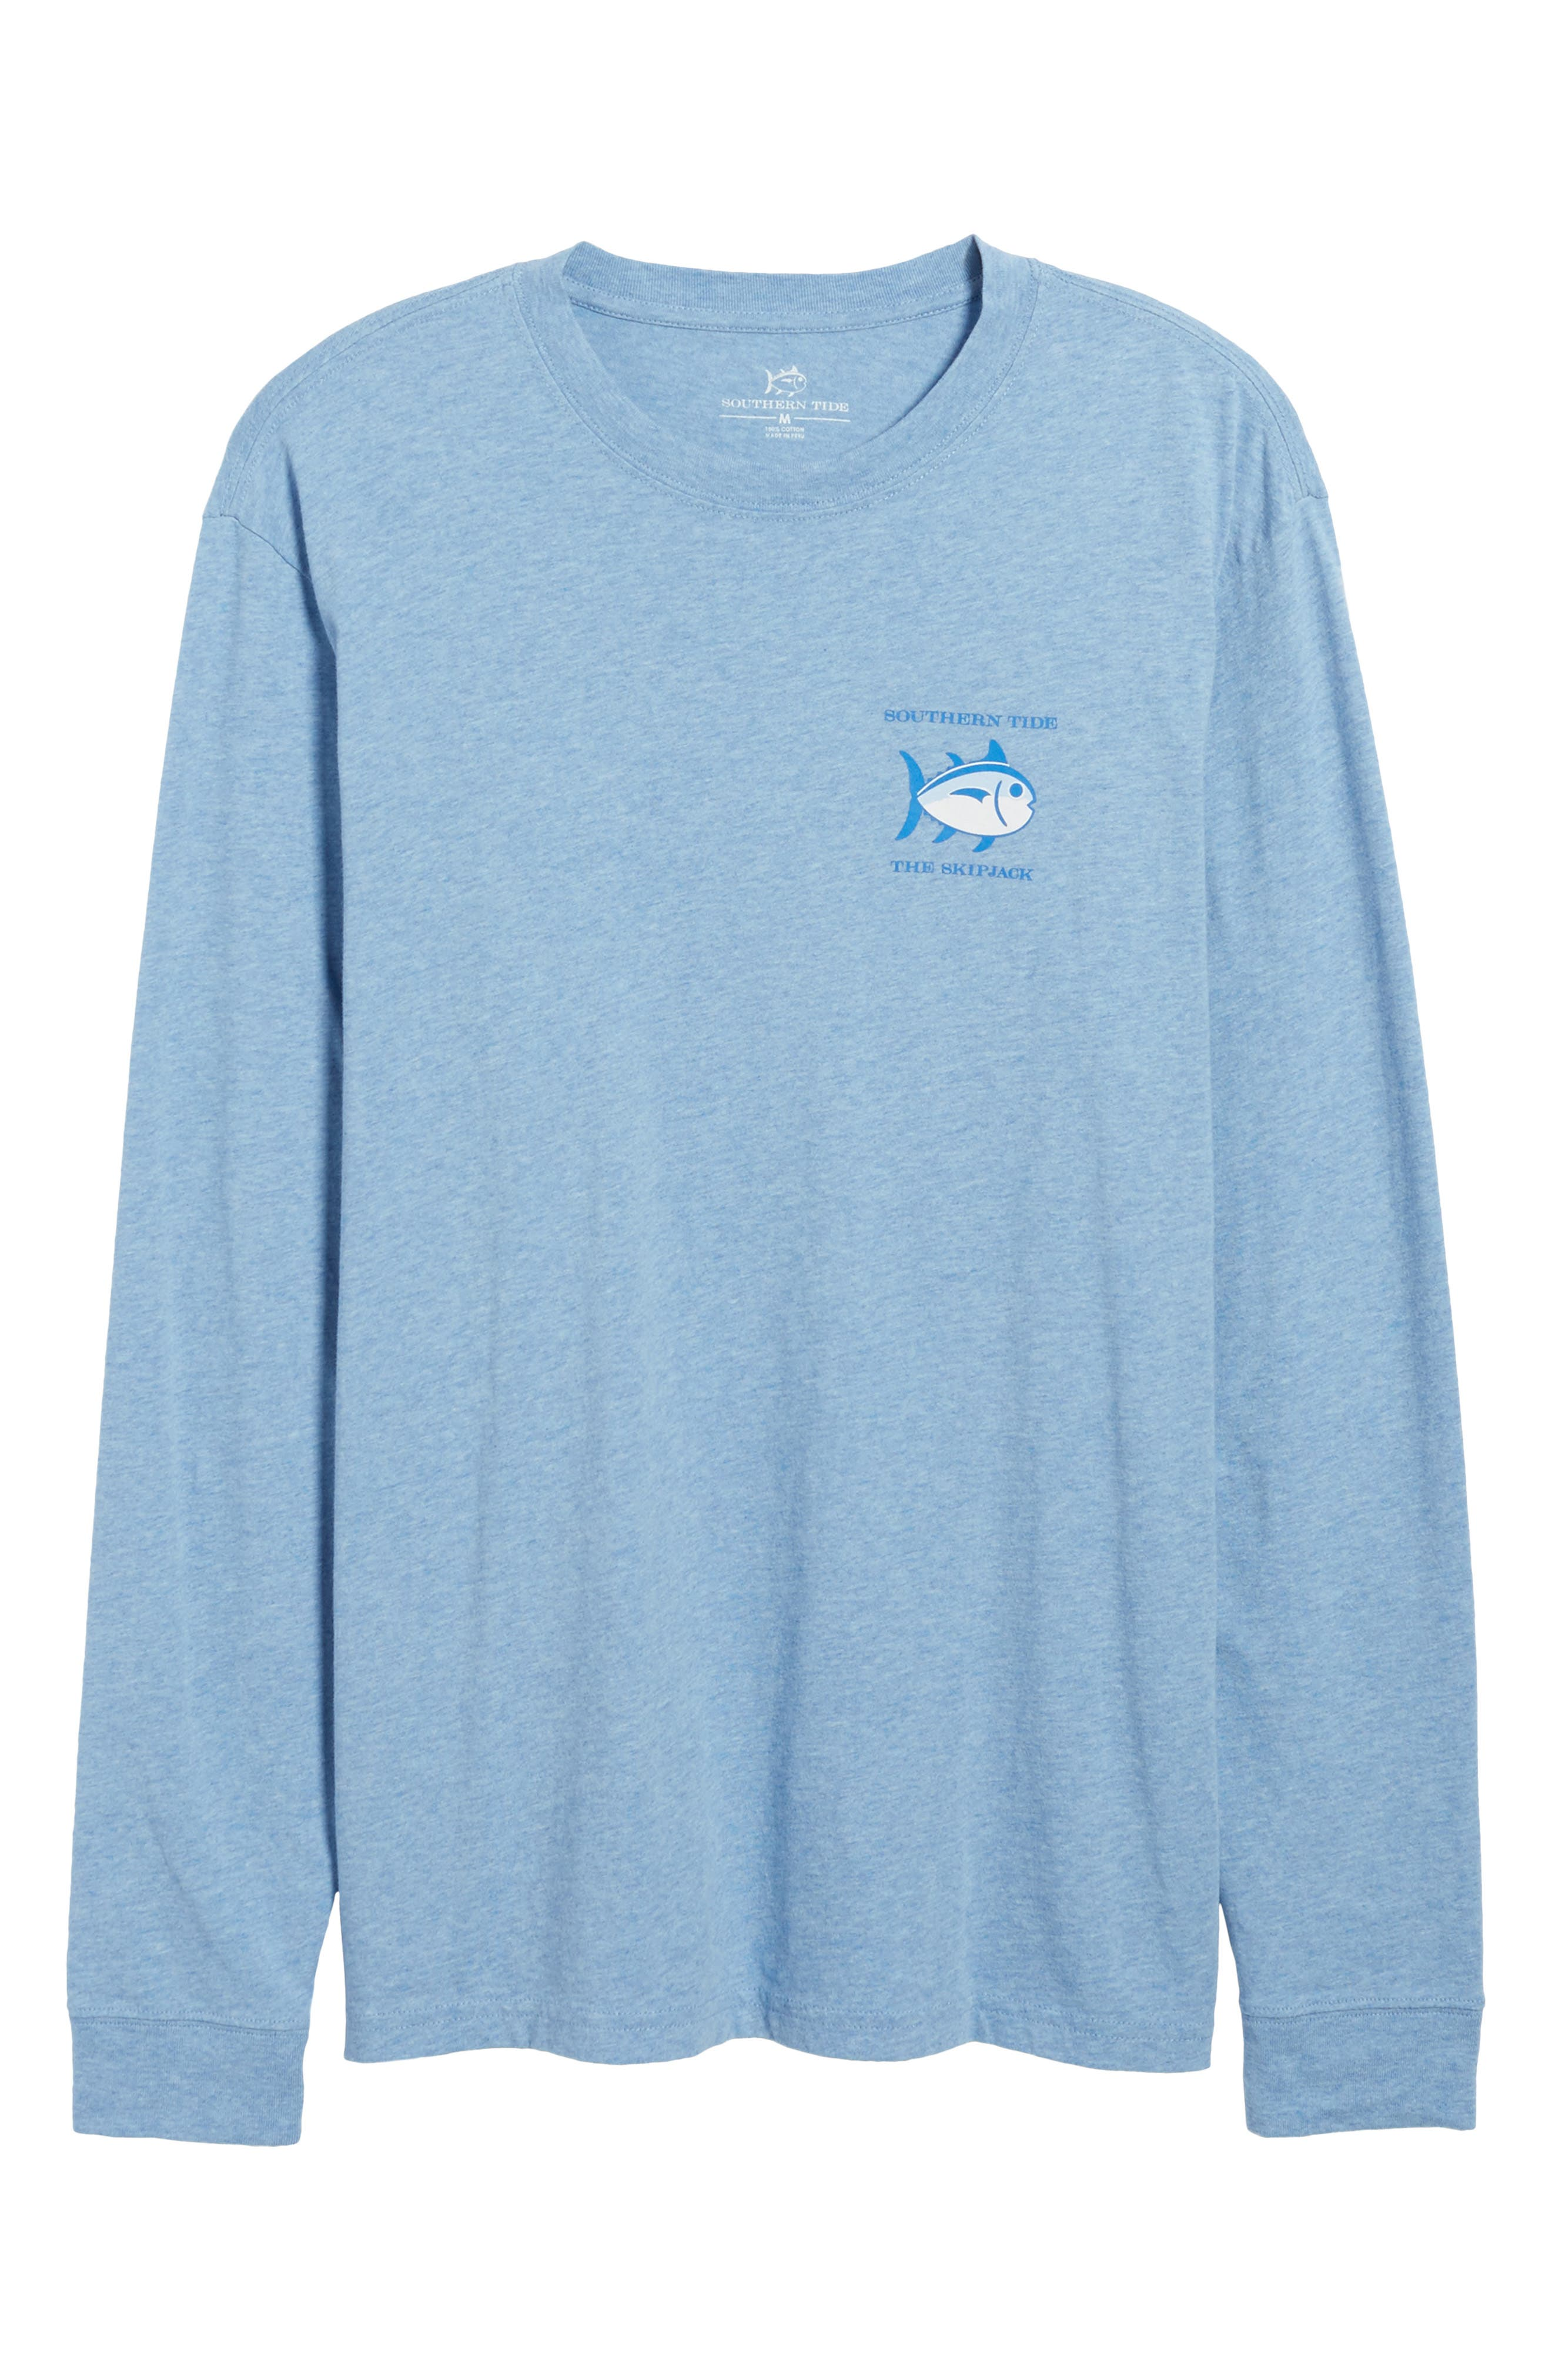 Original Skipjack T-Shirt,                             Alternate thumbnail 38, color,